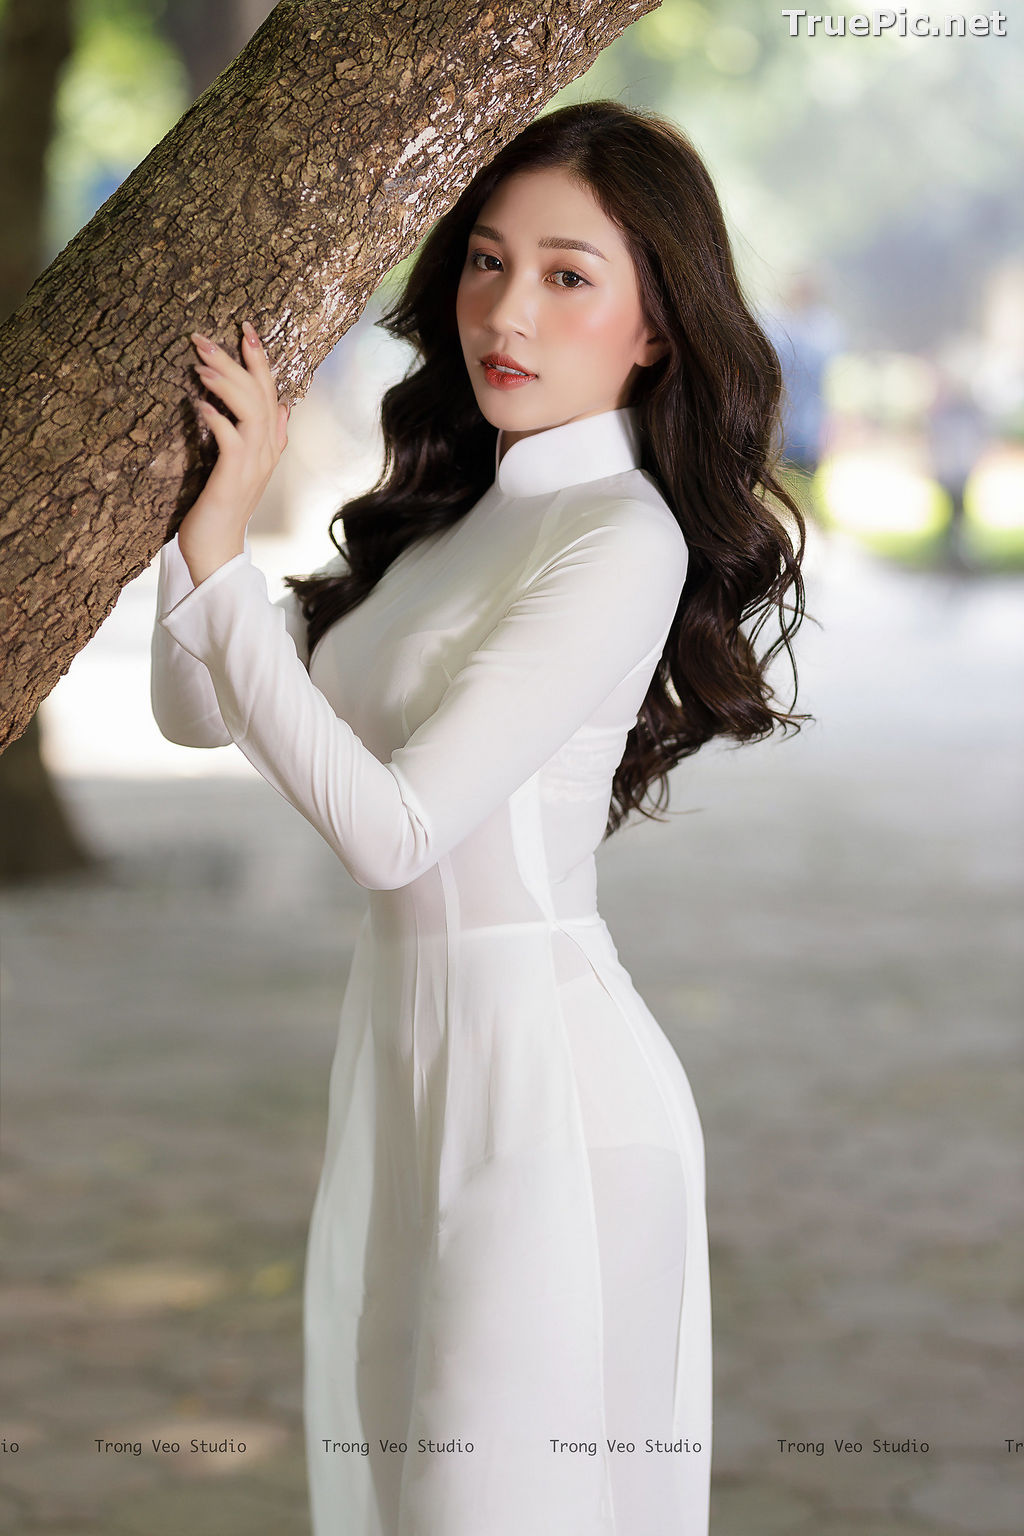 Image The Beauty of Vietnamese Girls with Traditional Dress (Ao Dai) #1 - TruePic.net - Picture-9